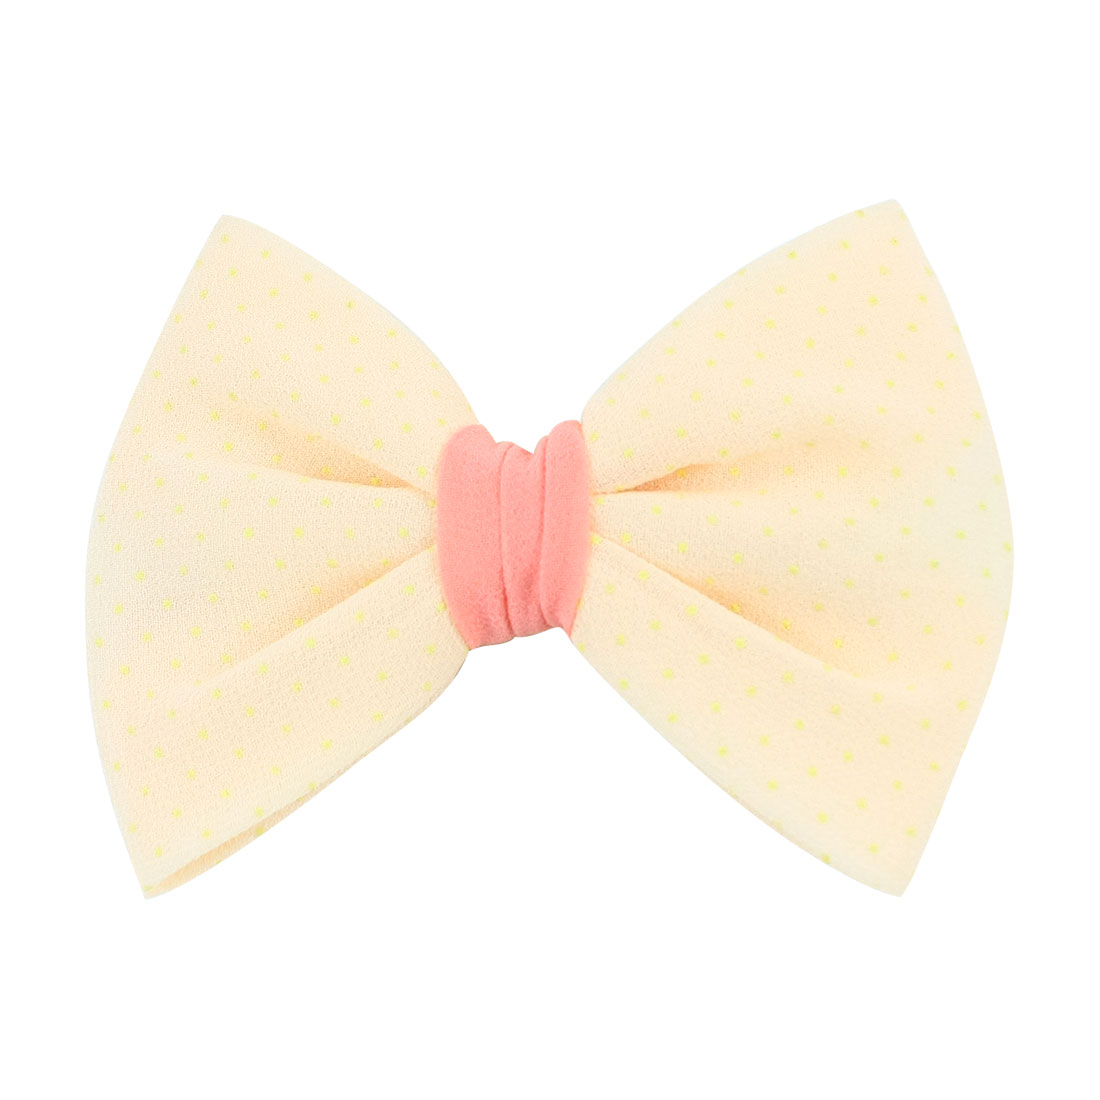 Woman Apricot Color Dotted Bowknot Light Orange Accent Alligator Hair Clip